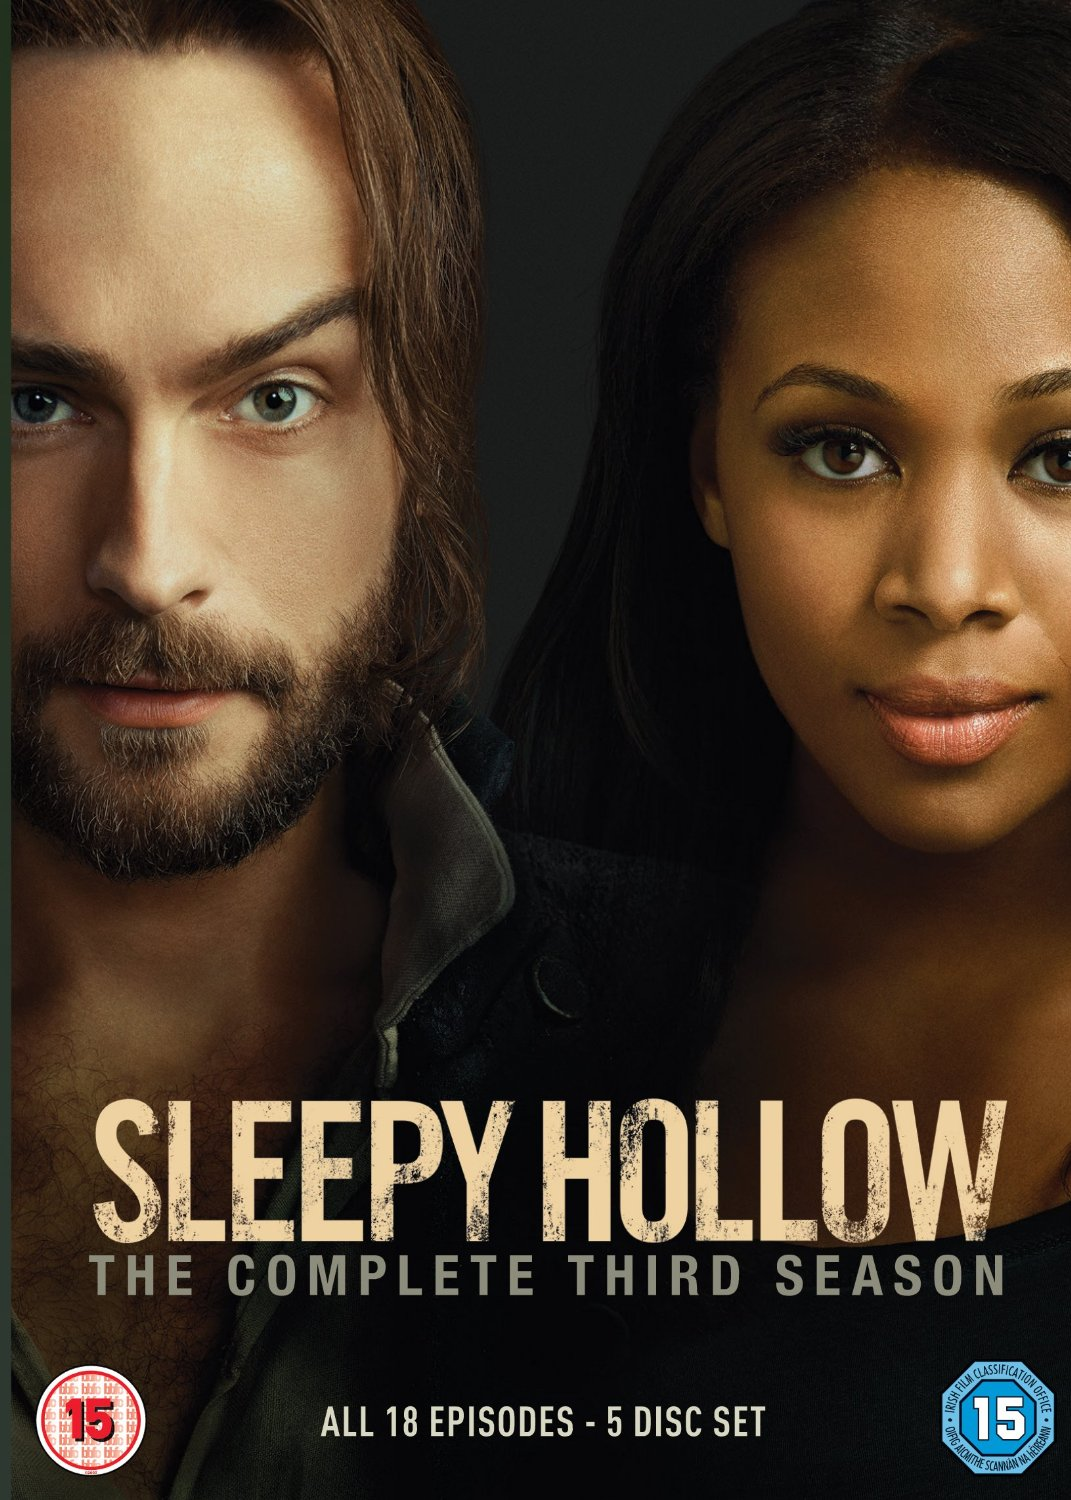 Sleepy Hollow Season 3 DVD review